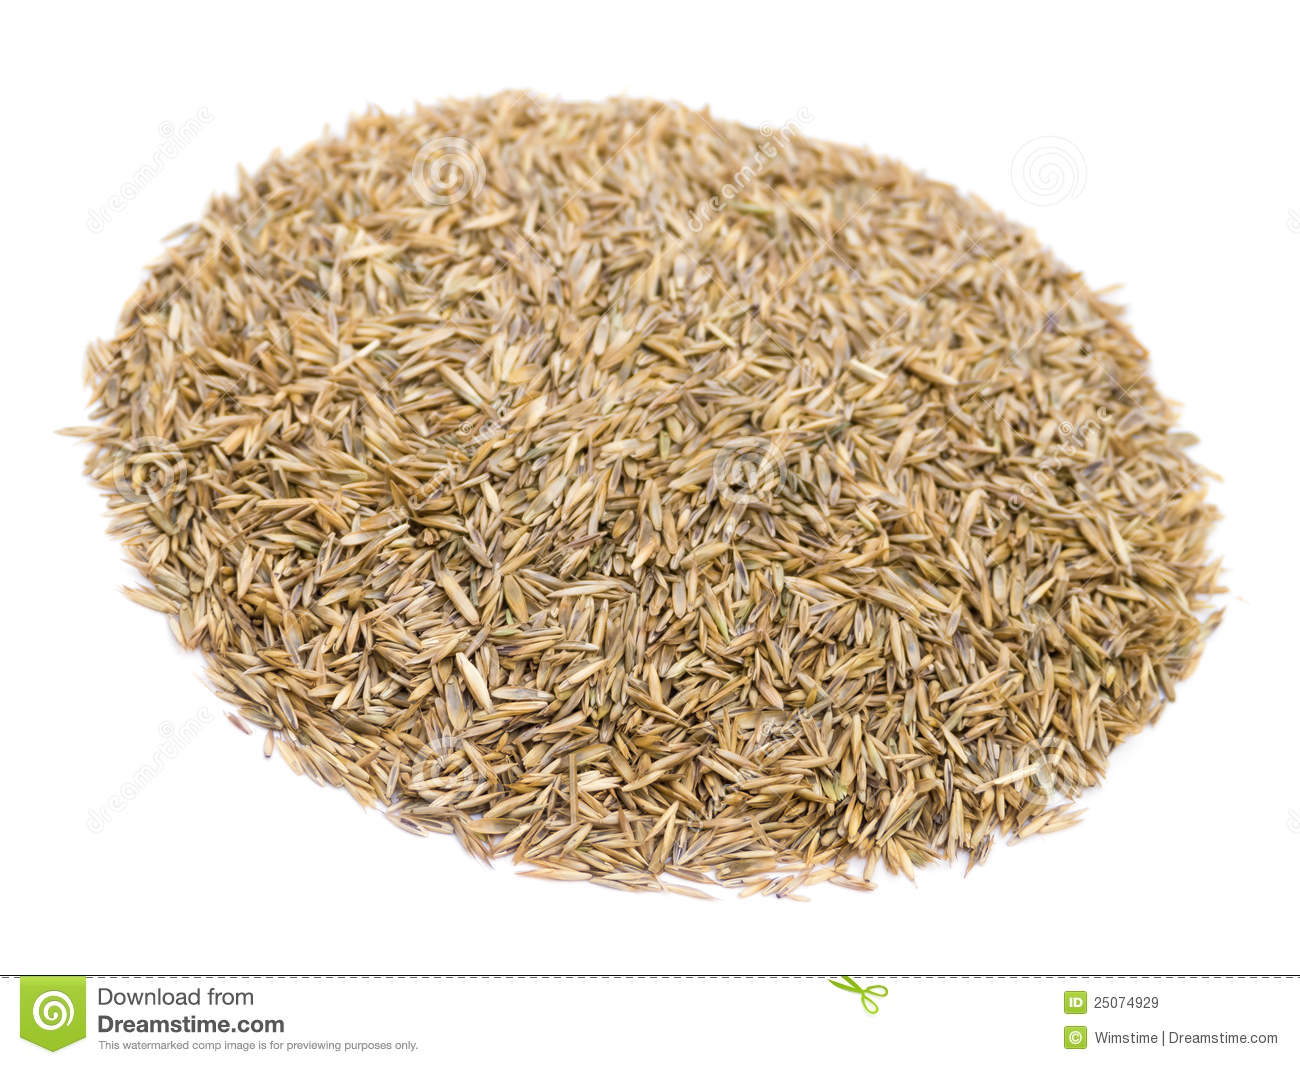 how to get free grass seed